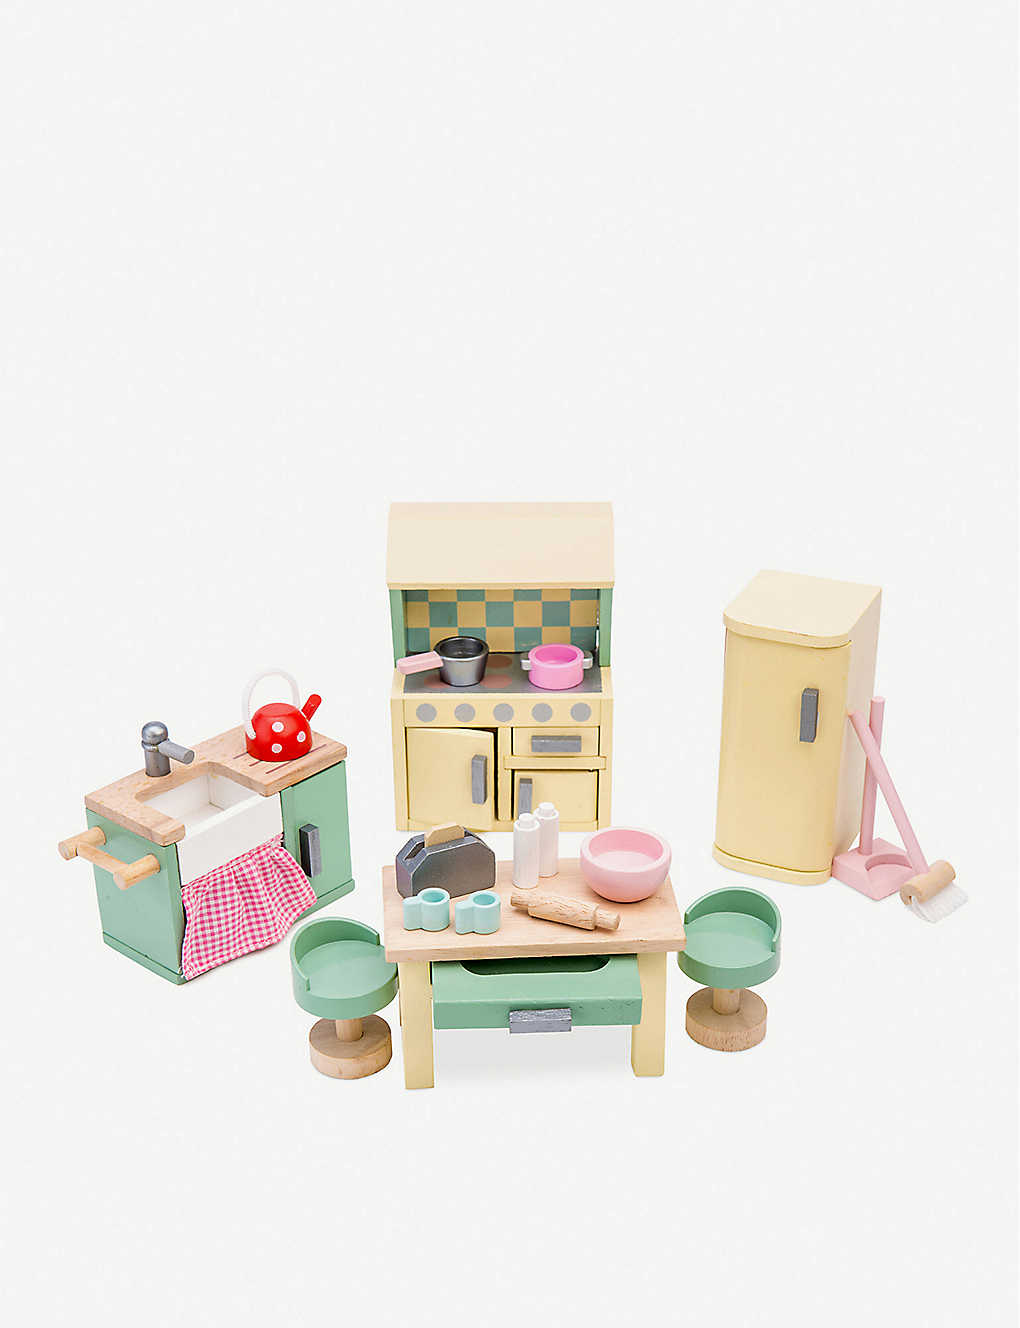 LE TOY VAN: Daisy Lane kitchen furniture set